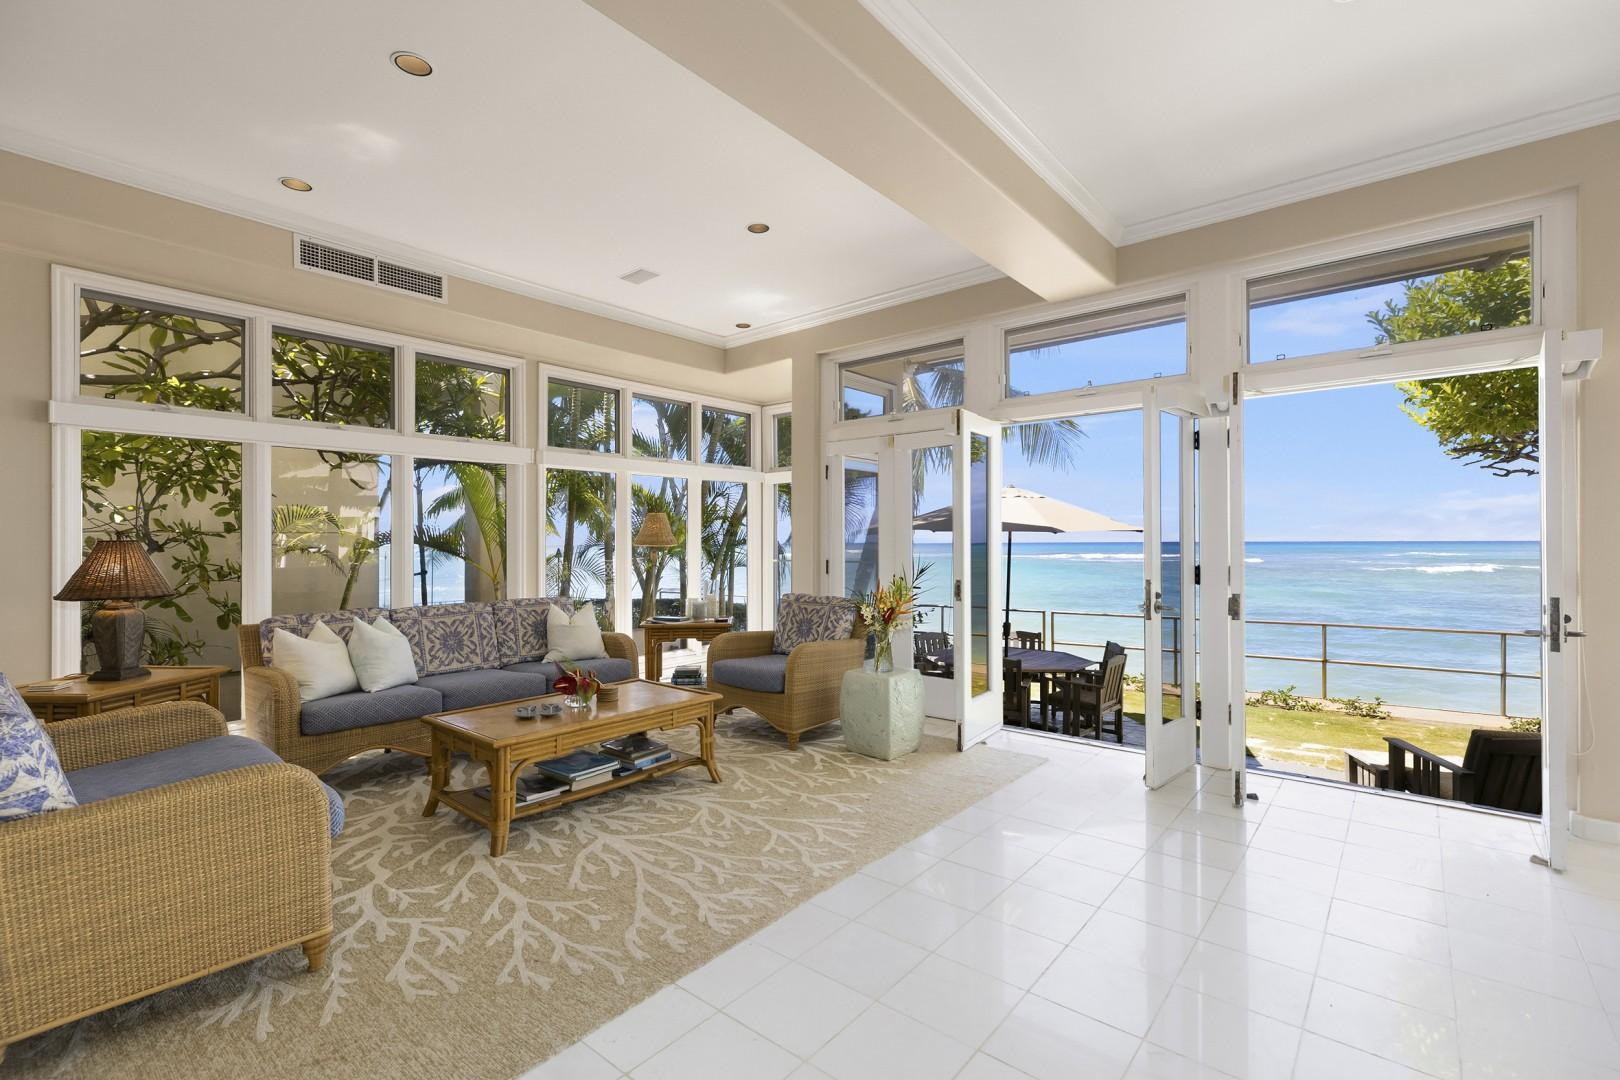 Living Room opens up to the Oceanside Lanai and Yard.